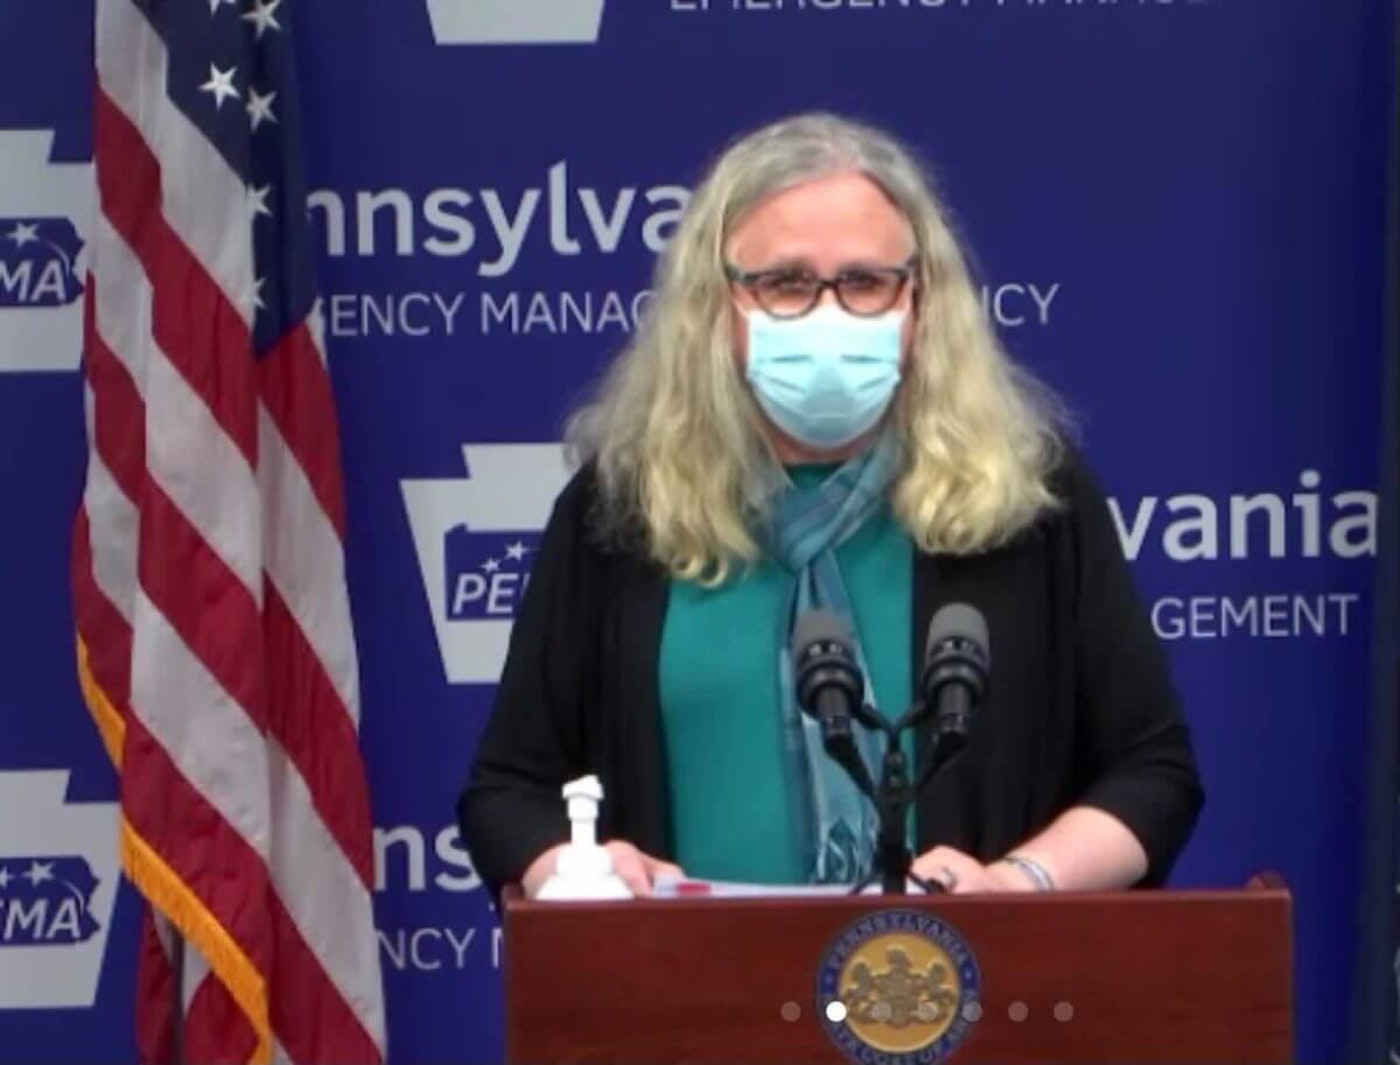 Pennsylvania Secretary of Health Dr. Rachel Levine speaks during a news conference on Thursday, Nov. 19, 2020. (Screenshot)